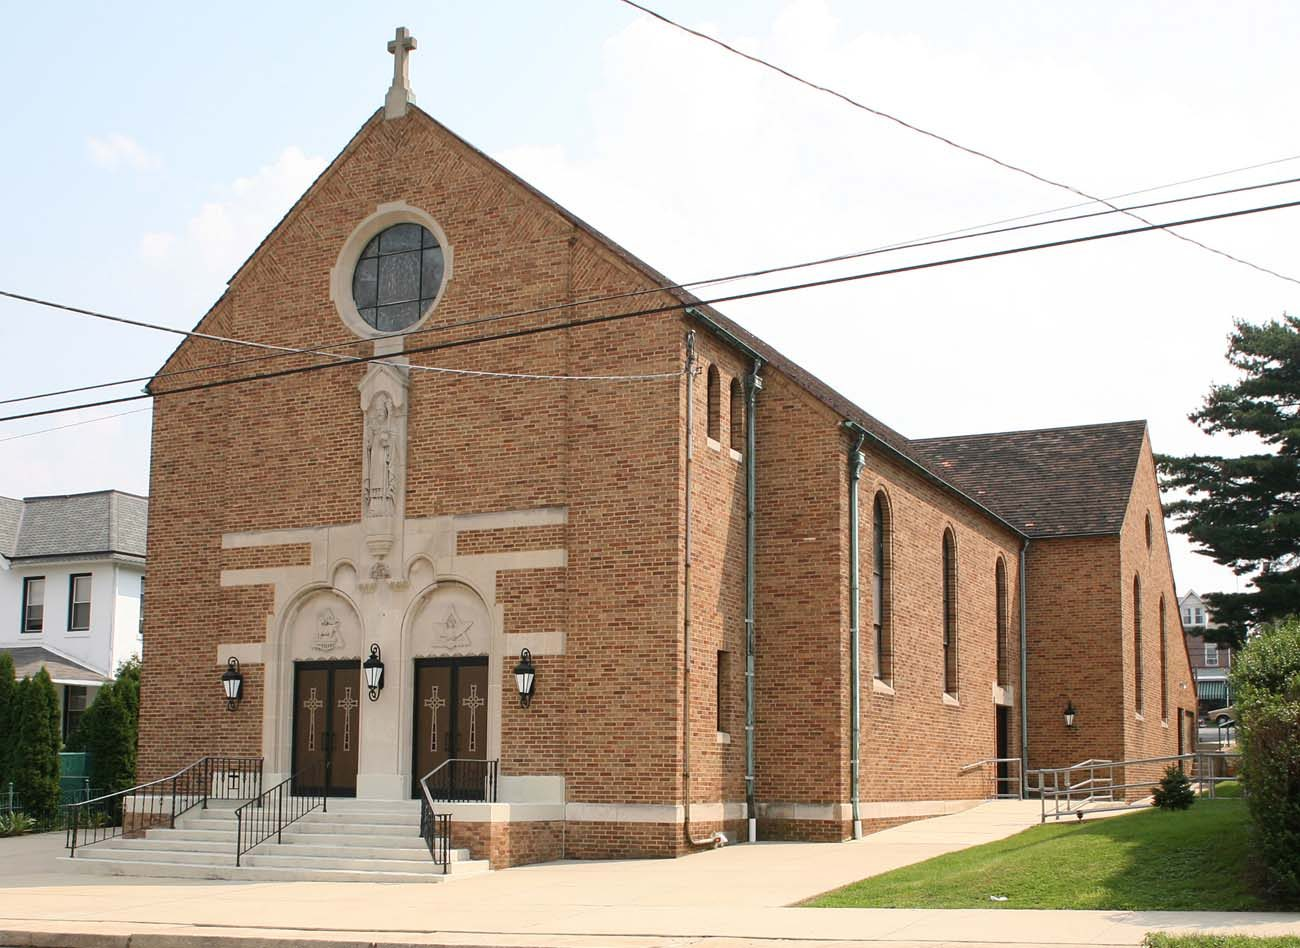 St. Augustine Church in Bridgeport, Montgomery County, which has been a worship site of Sacred Heart Parish in Swedesburg since 2014, will close effective Jan. 11, 2017, Archbishop Charles Chaput announced Dec. 11.